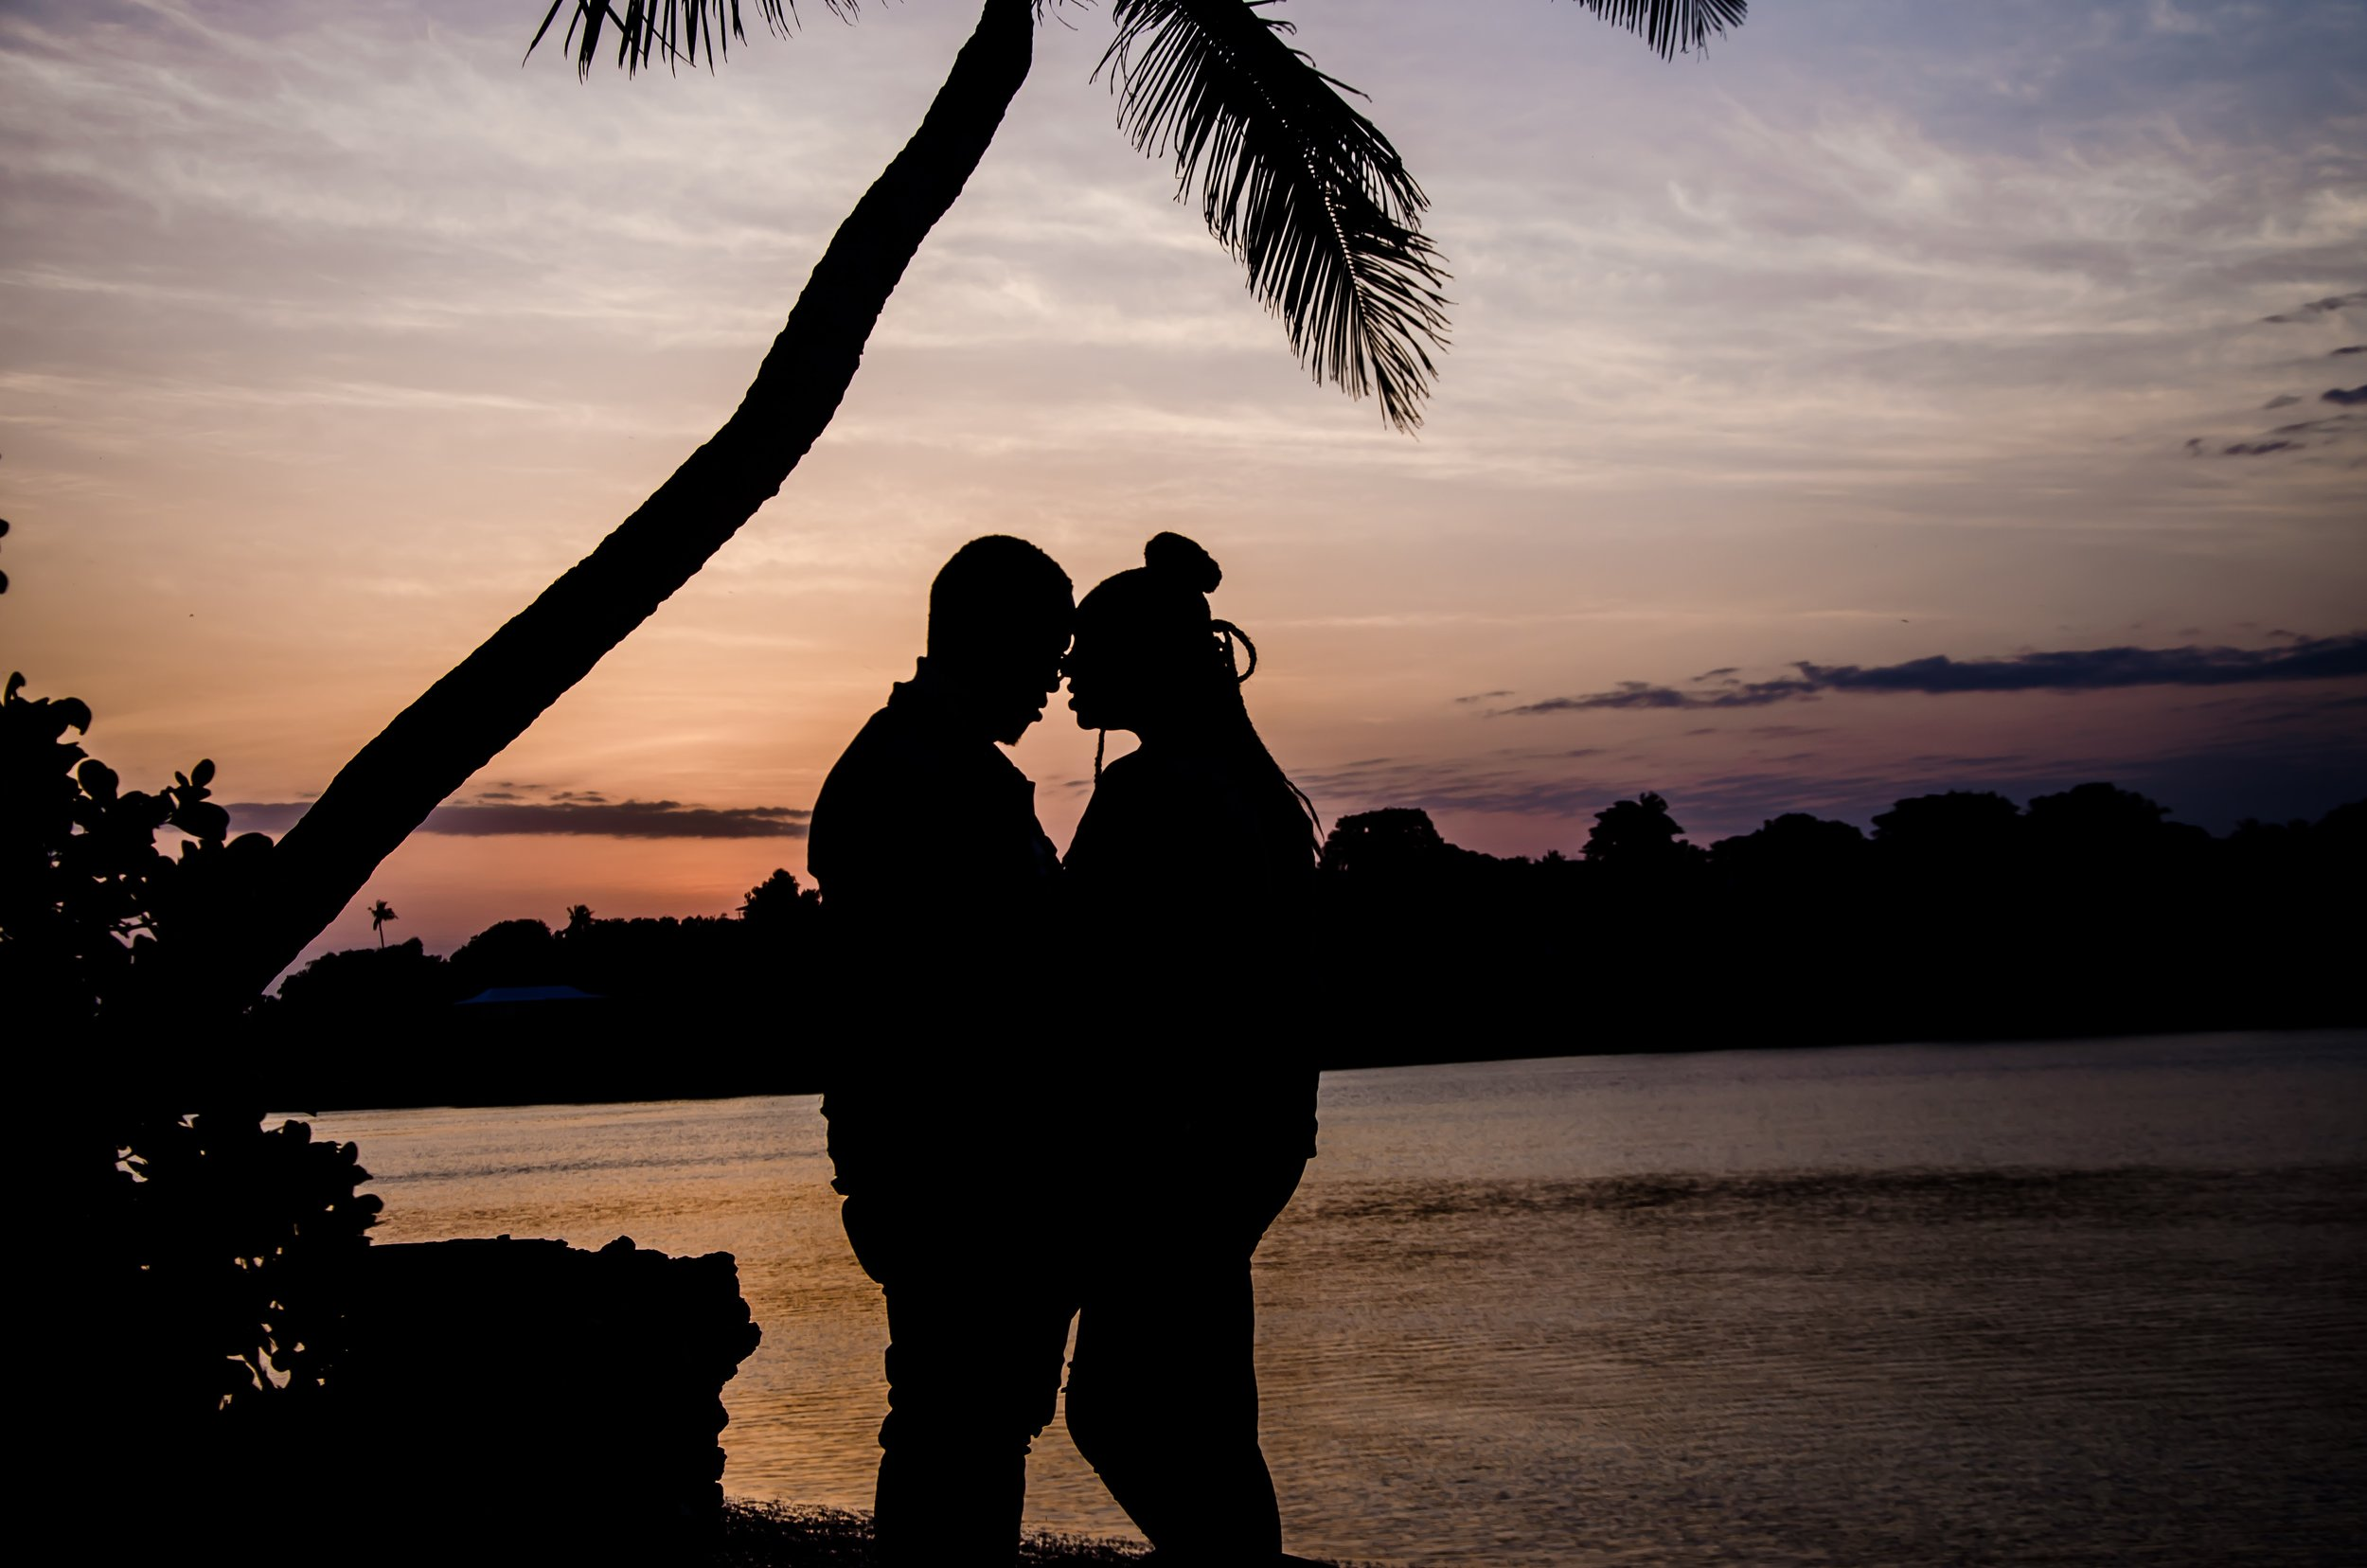 backlit-beach-couple-1406892.jpg